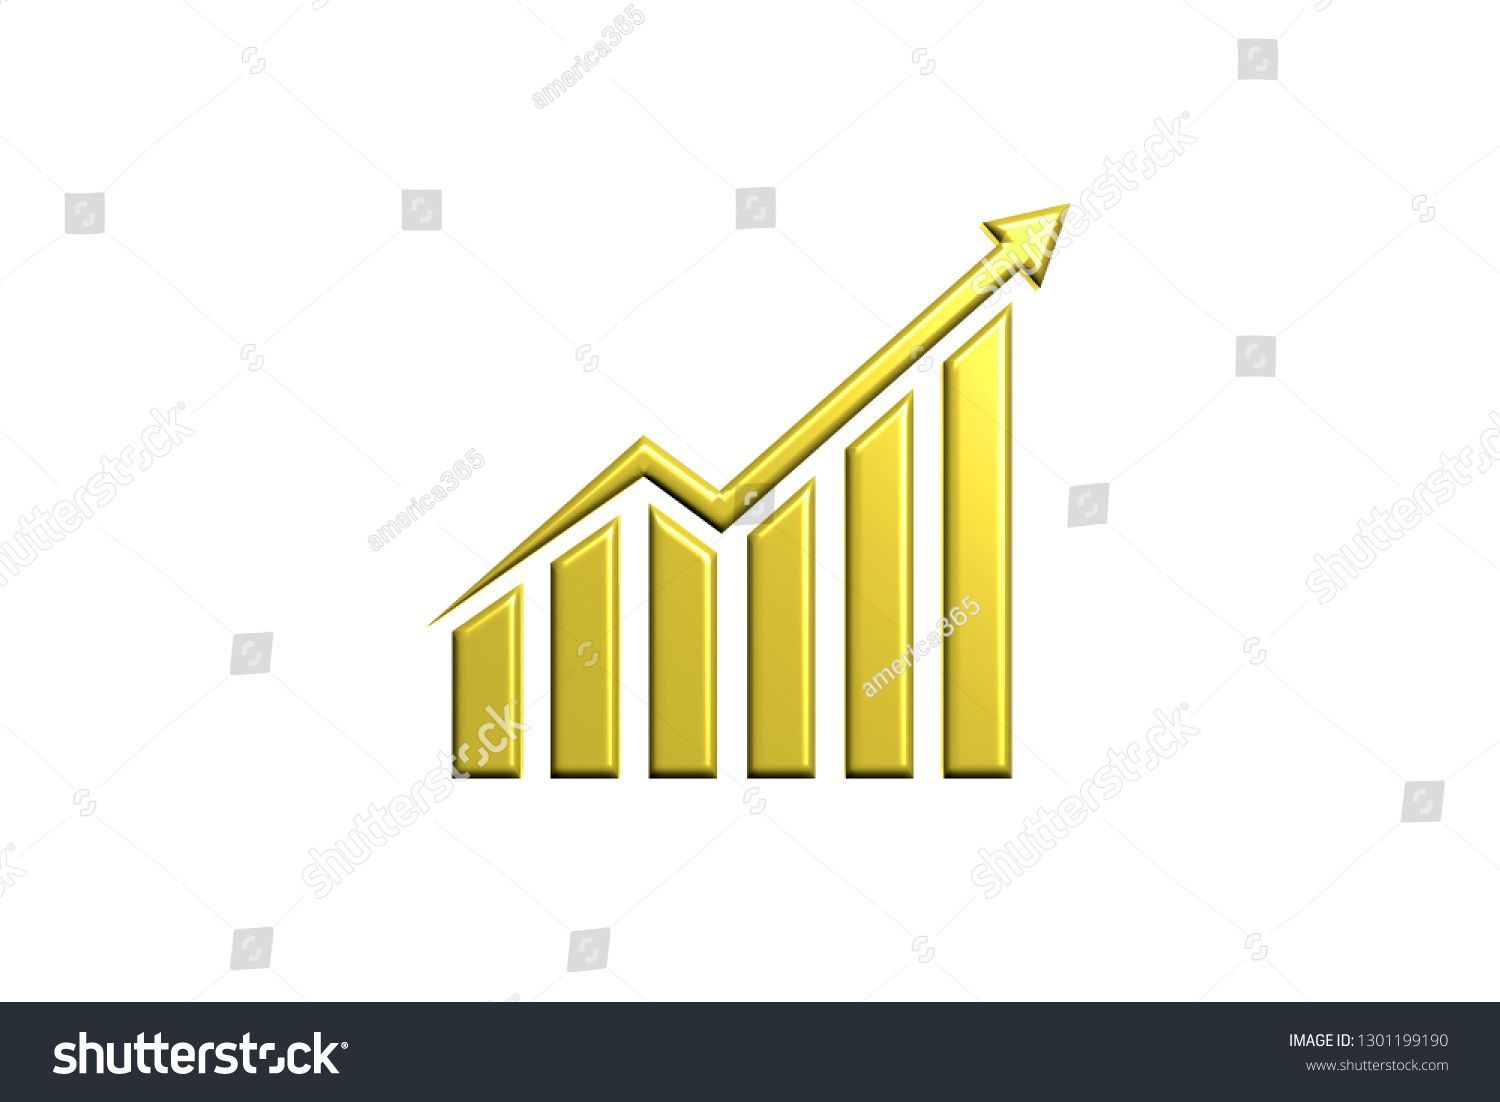 Finance Rising Up Logo Gold Style 3d Render Illustration Finance Business Bar Graph Chart Growth Success Financial Gold Style Finance Illustration